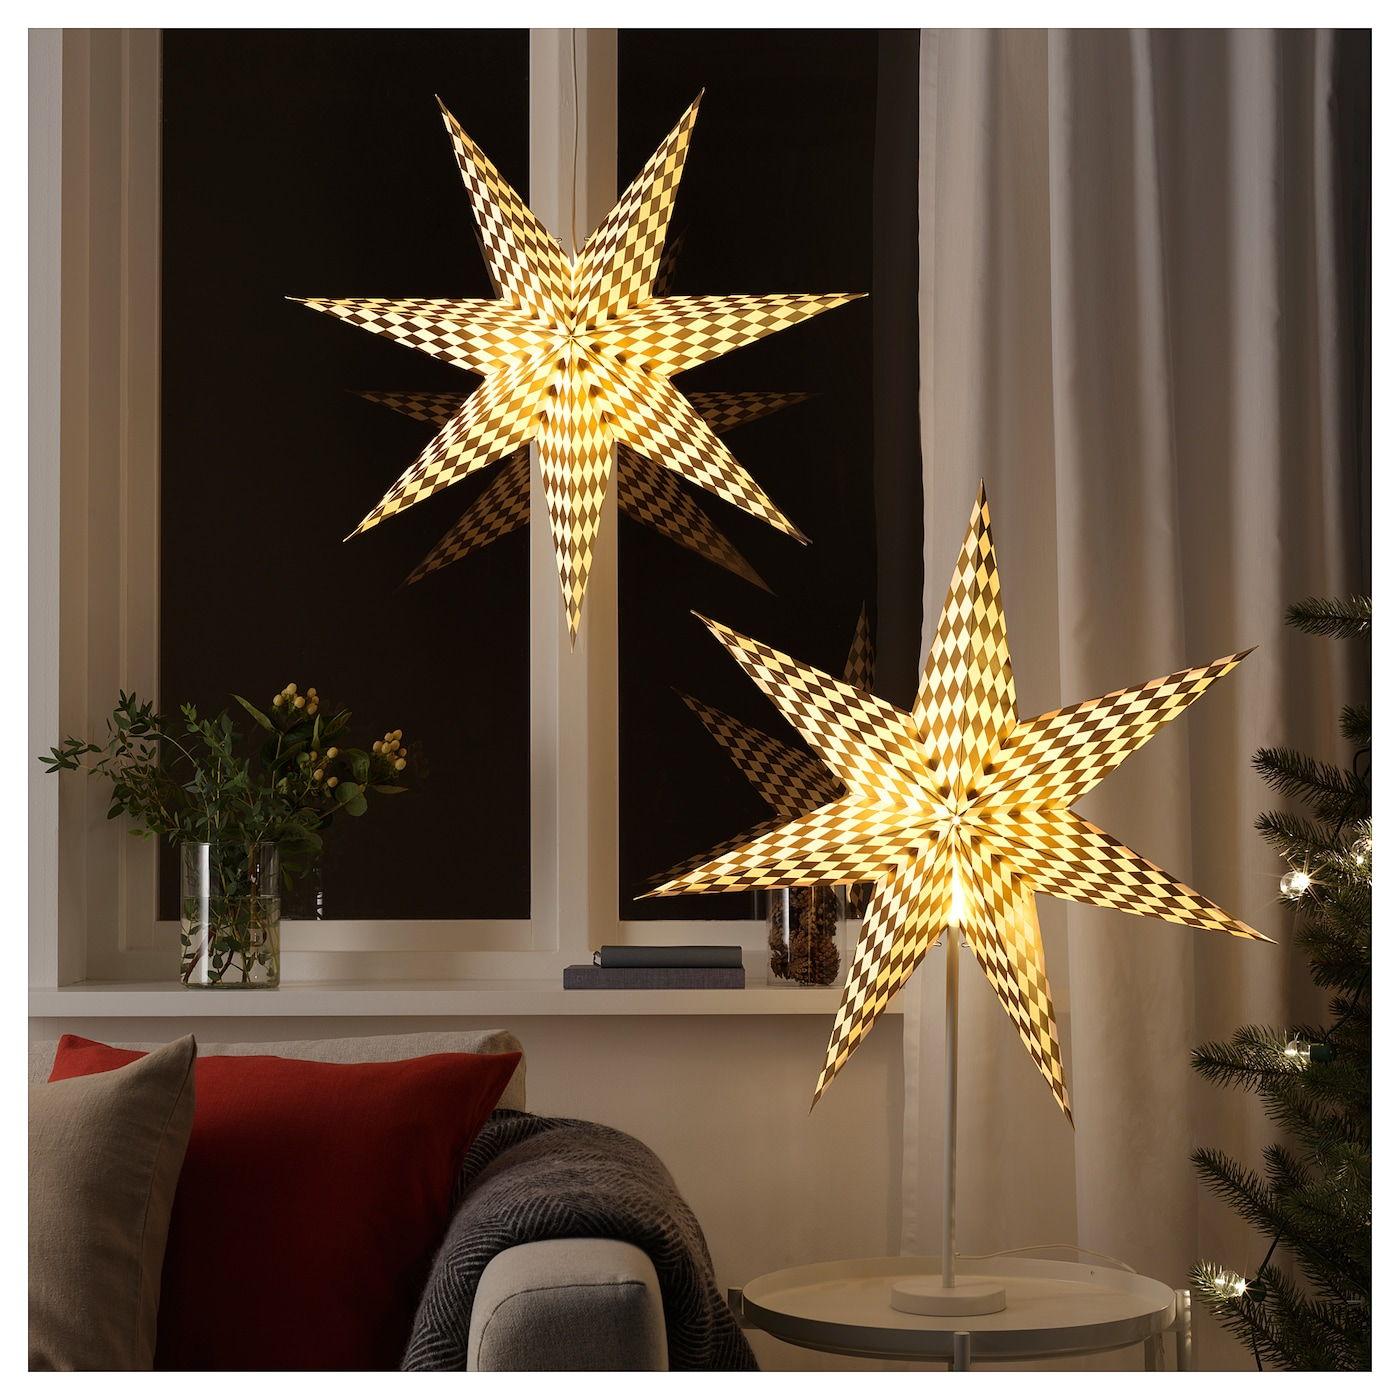 Ikea StrÅla Lamp Shade Gives A Warm Cosy Glow And Spreads The Holiday Atmosphere In